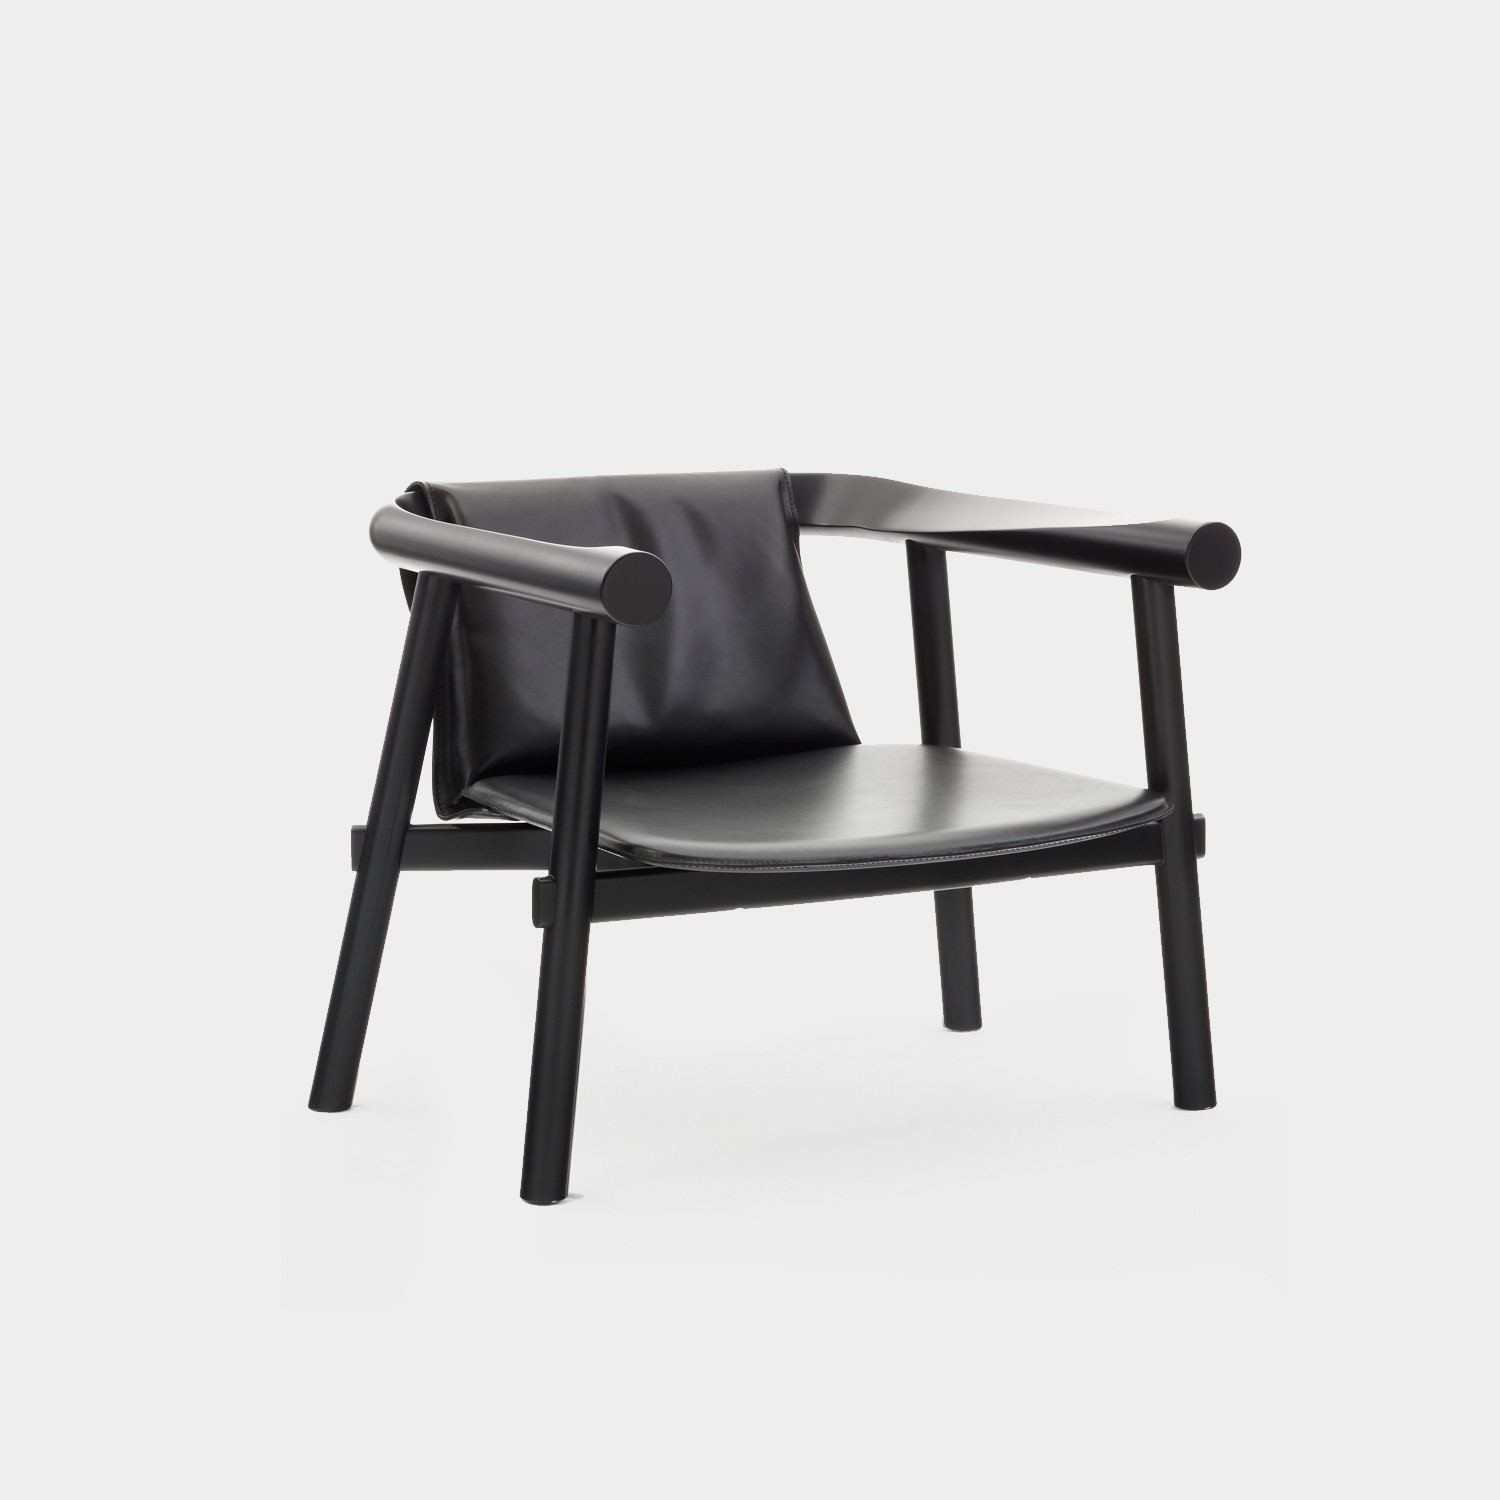 Altay Armchair, Black Structure, Black Leather Seat